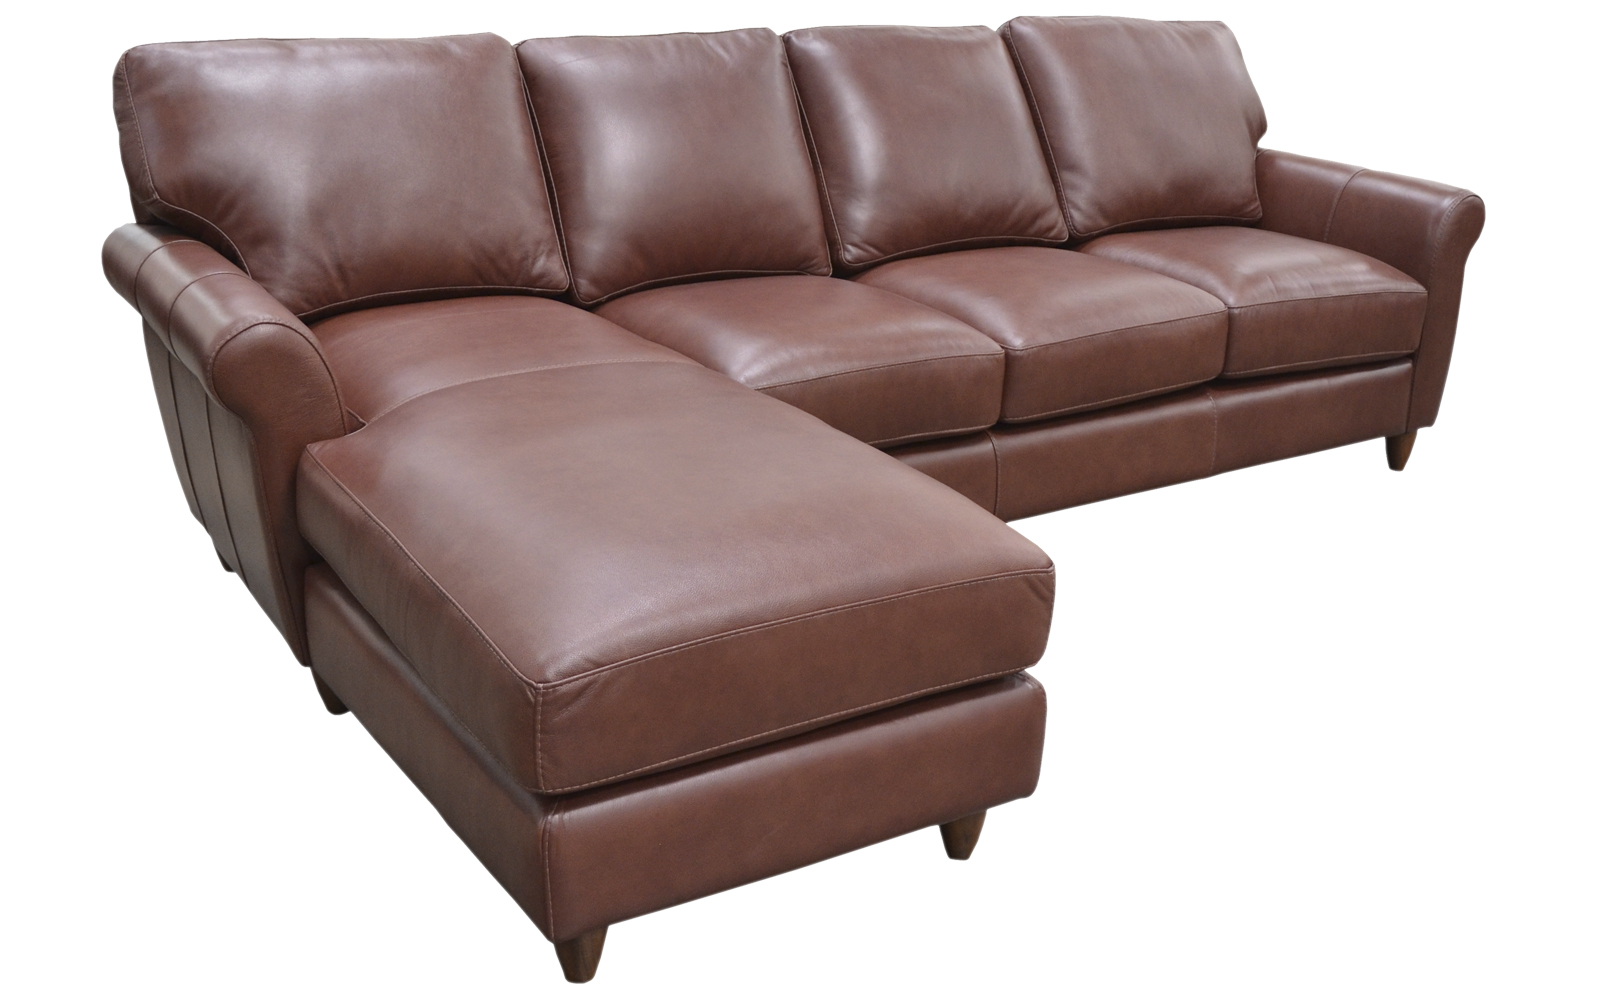 Cameo Chaise Sectional Arizona Leather Interiors